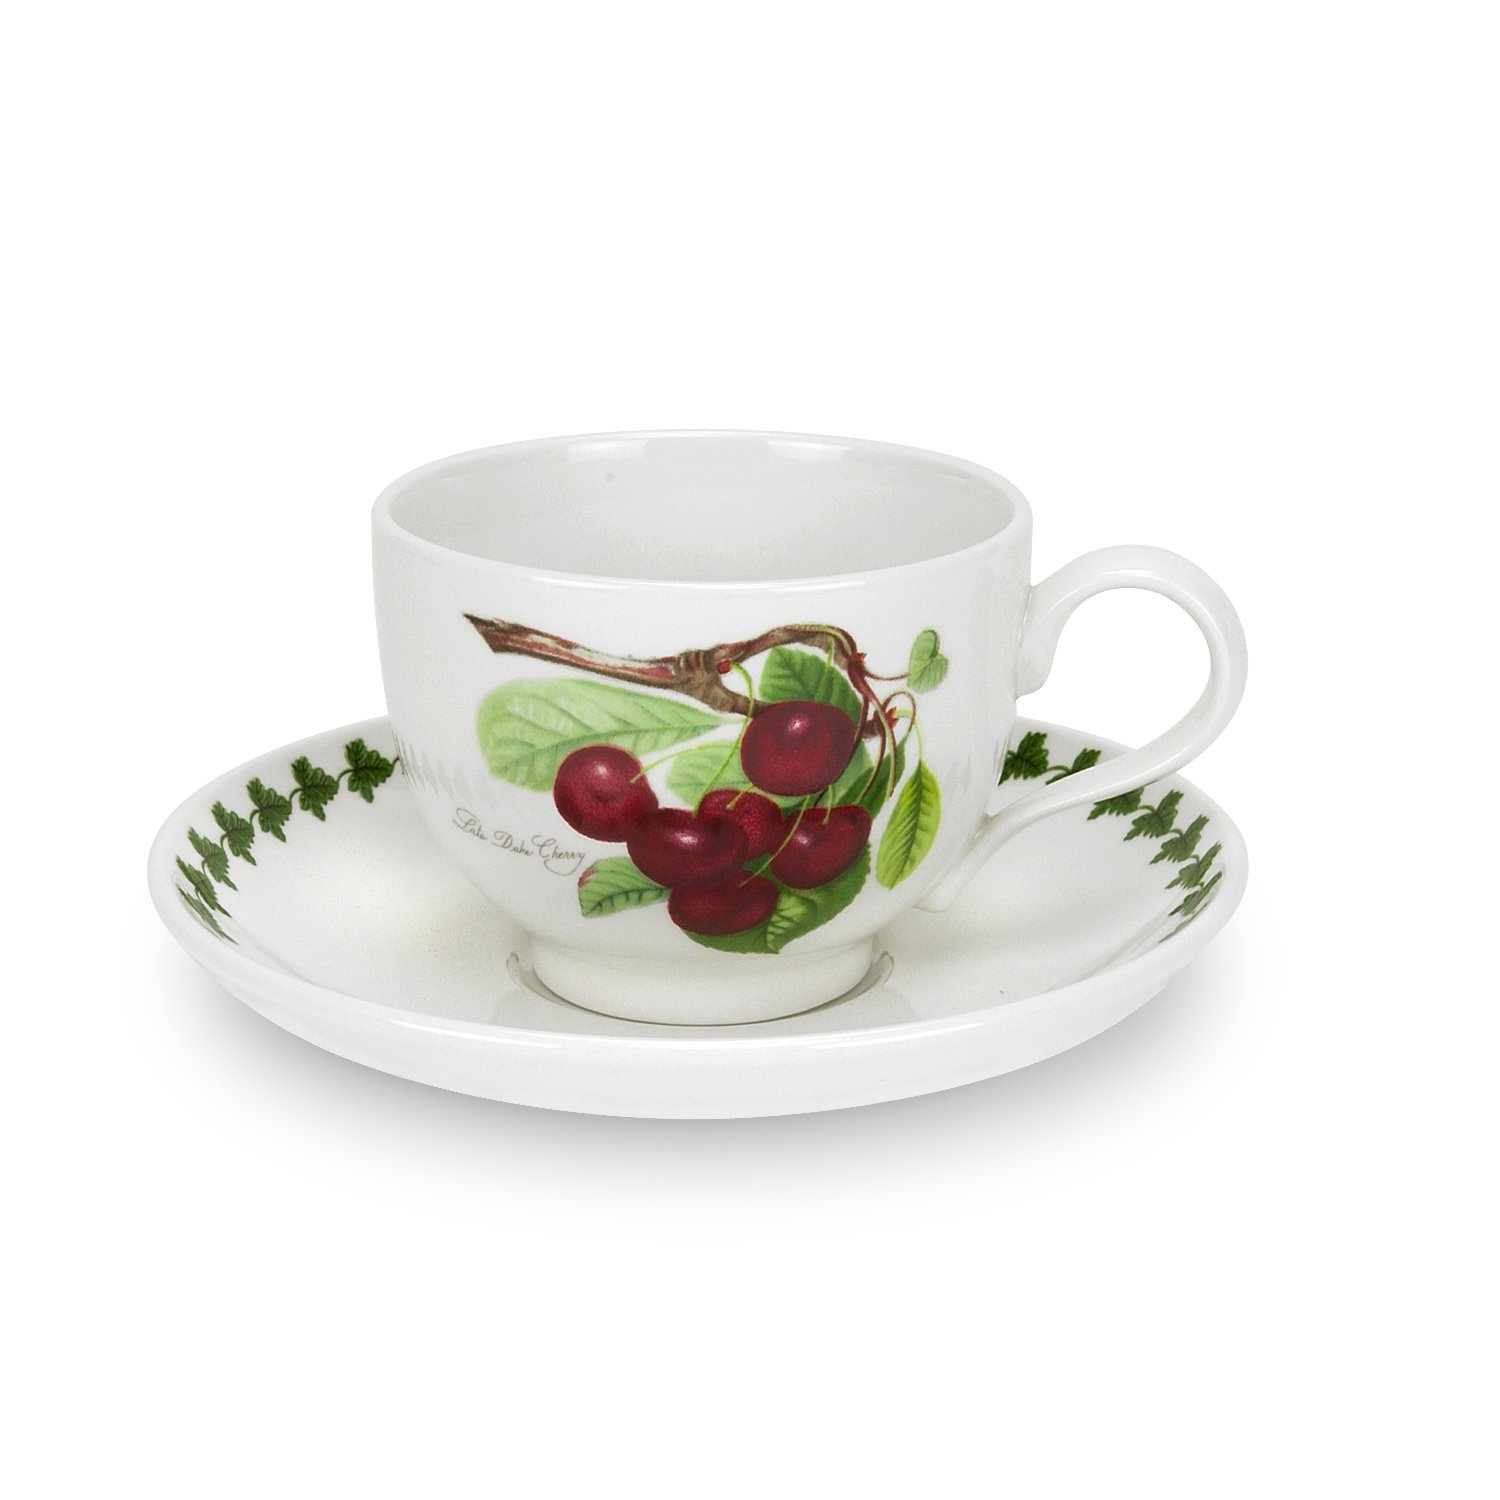 Portmeirion Pomona Traditional Shape Breakfast Cup and Saucer,  Set of 6 Assorted Motifs